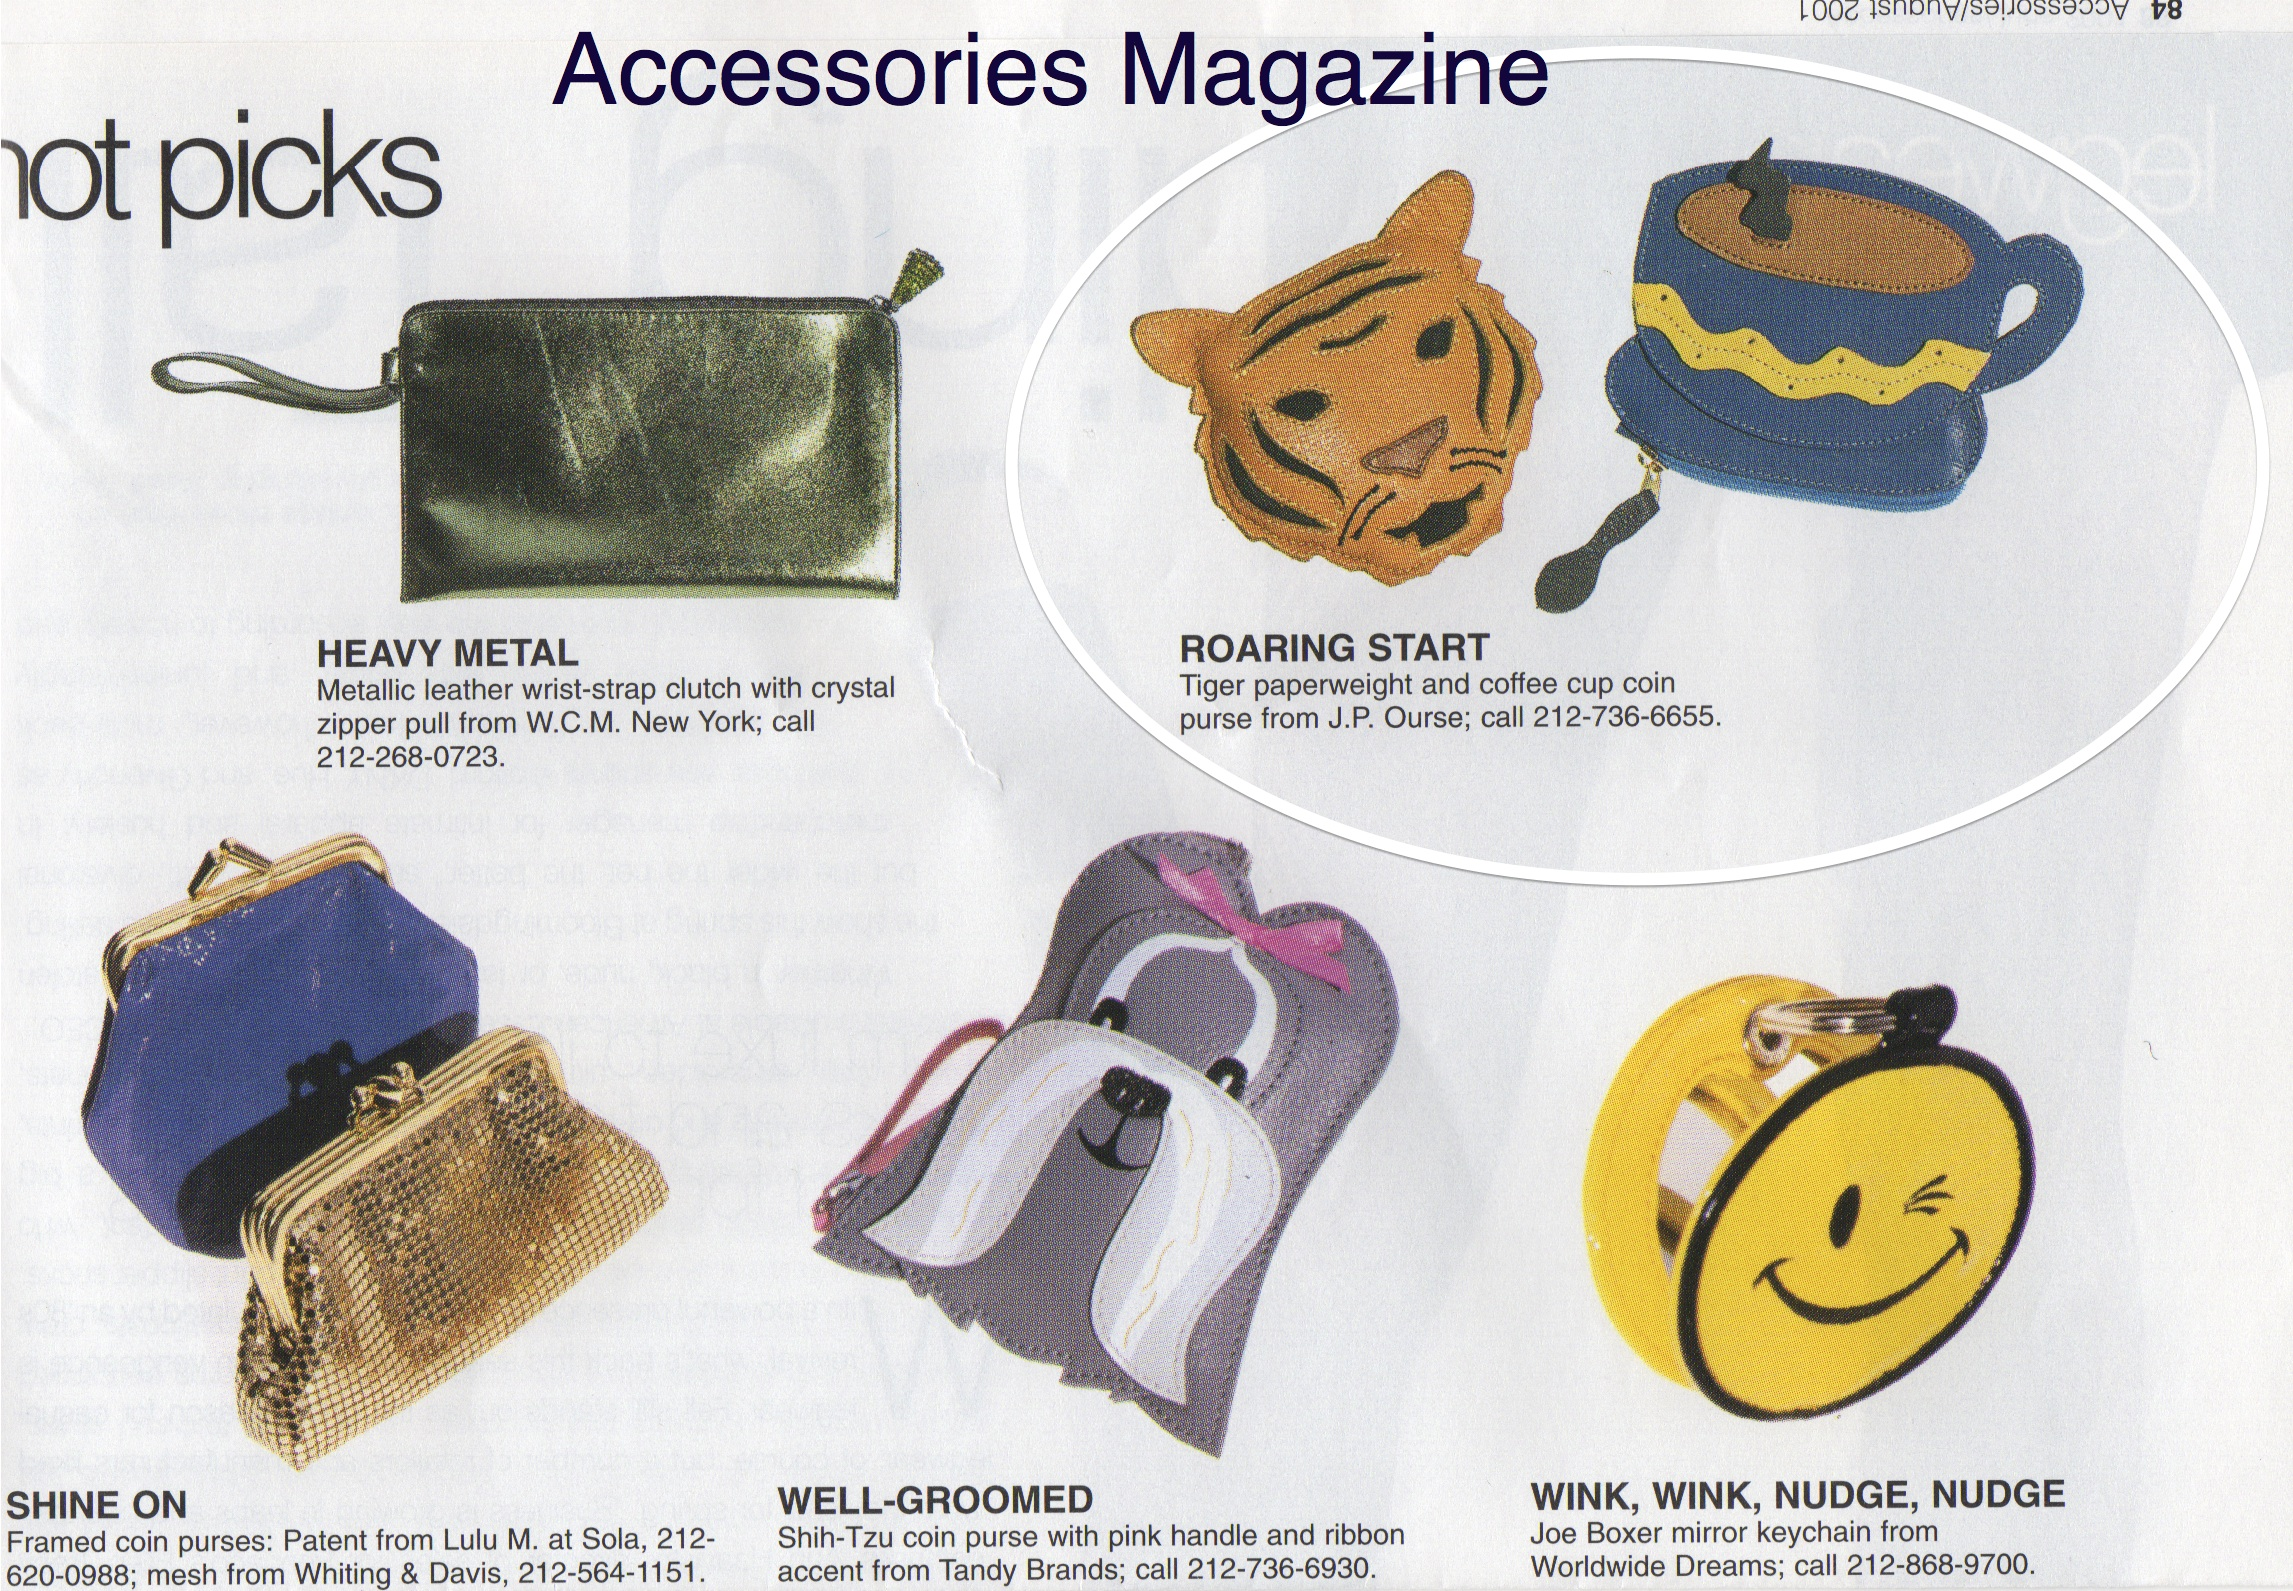 HOT PICKS from Accessories Magazine